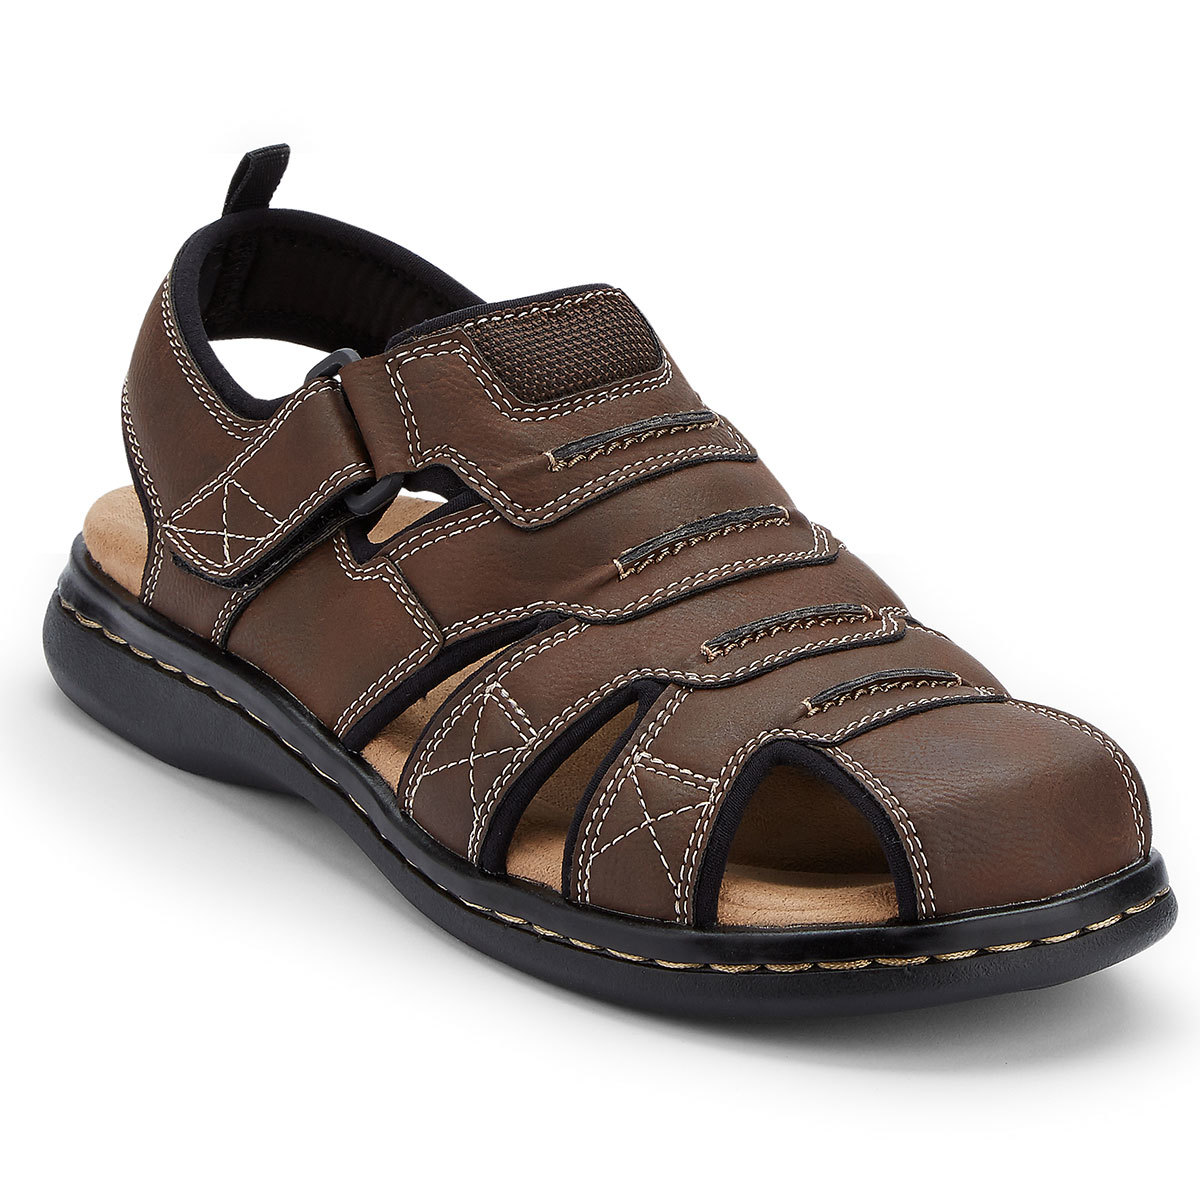 Dockers Men's Searose Fisherman Sandals - Brown, 13